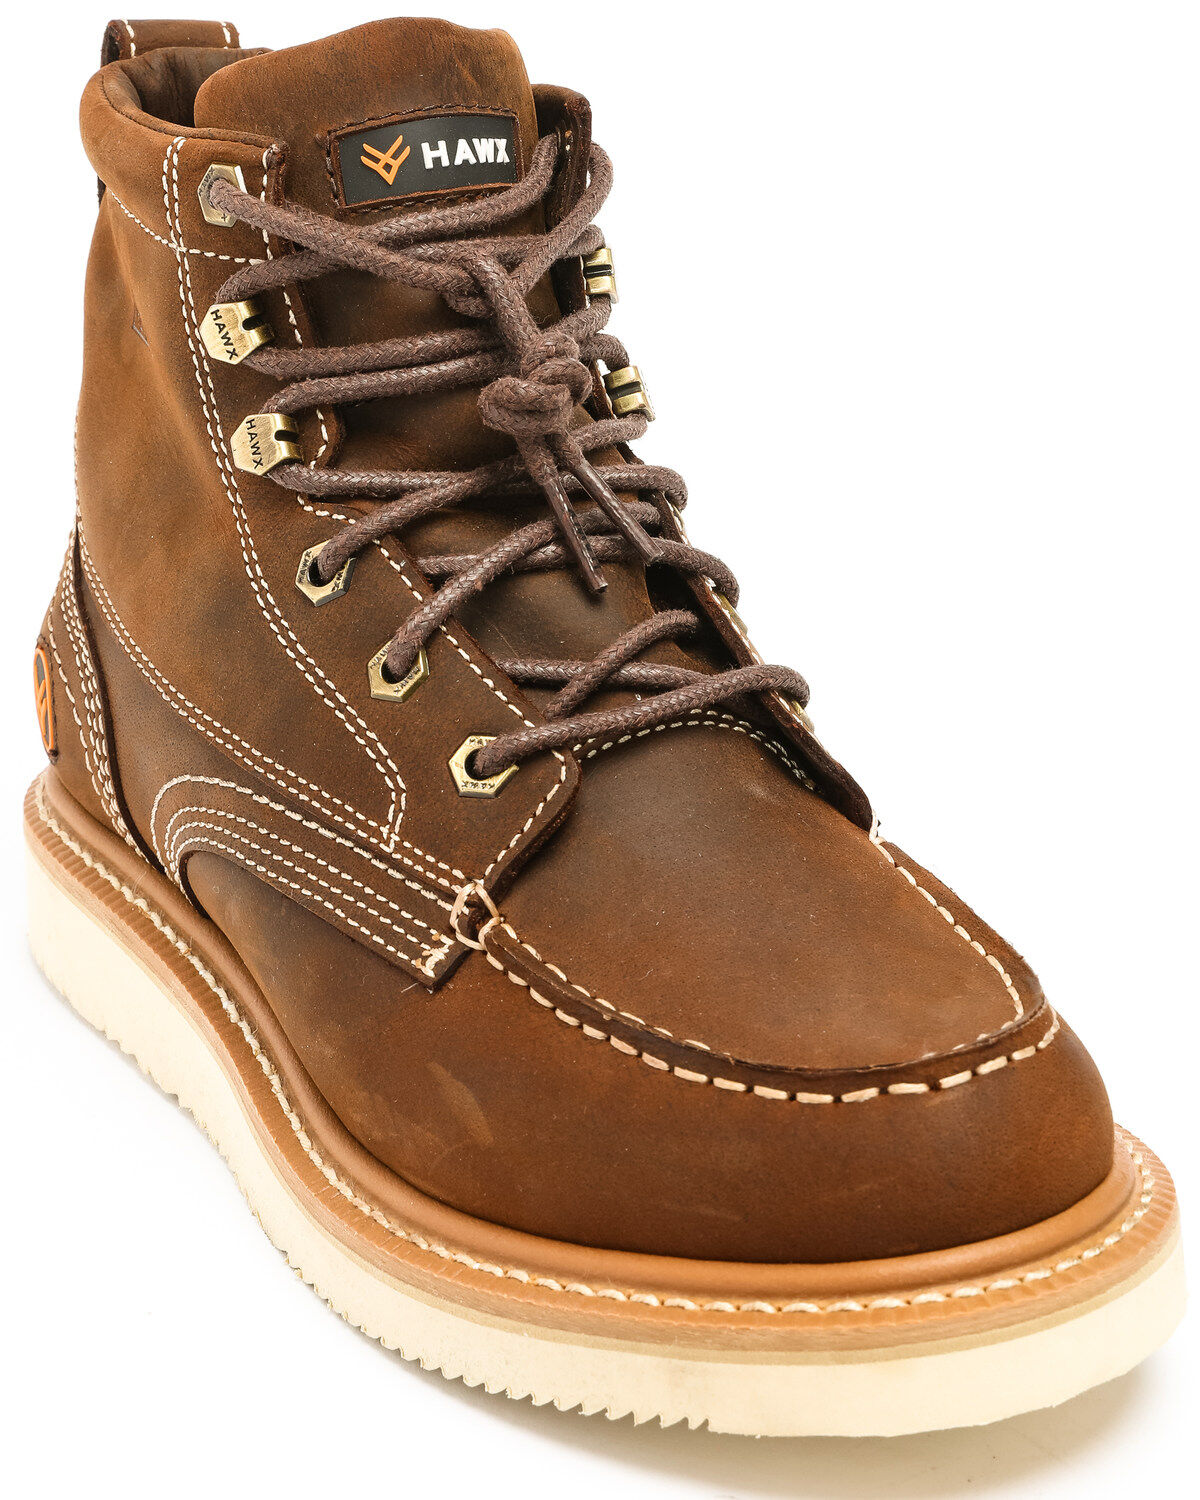 Frugal Danner Mountain Boots Mens Size 9 Latest Technology Clothing, Shoes & Accessories Men's Shoes